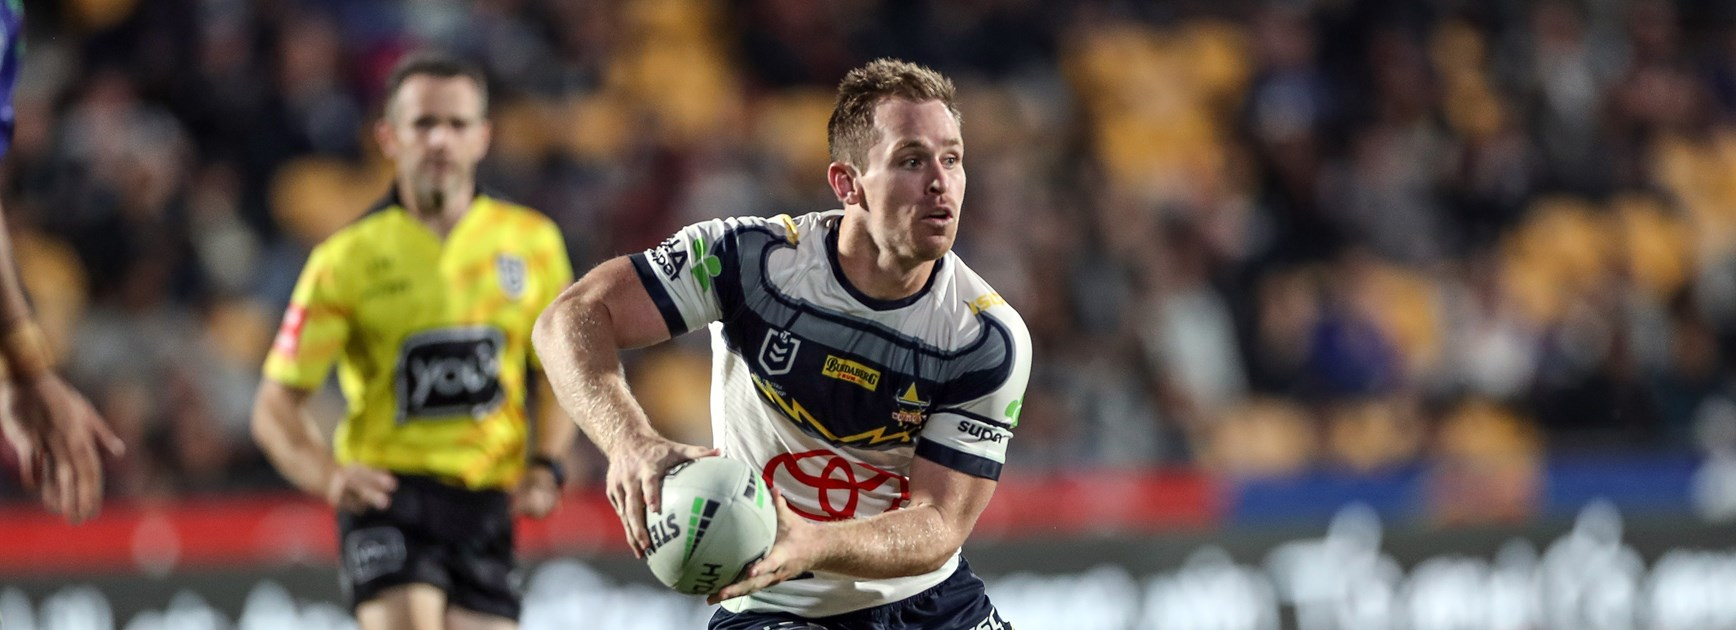 NRL Team of the Week: Round 6 results